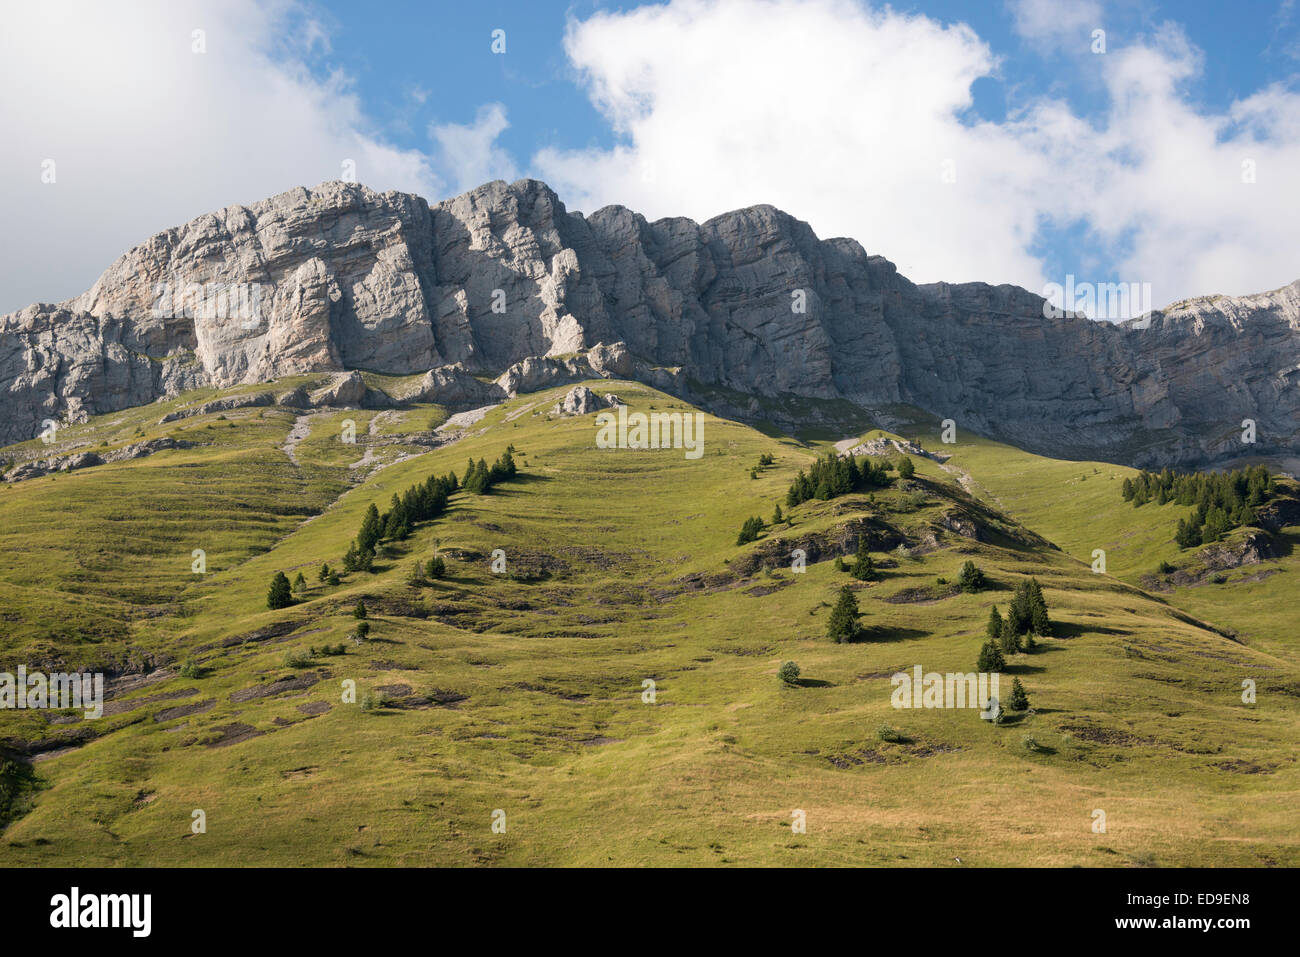 ARAVIS range mountains in French PreAlps. . - Stock Image